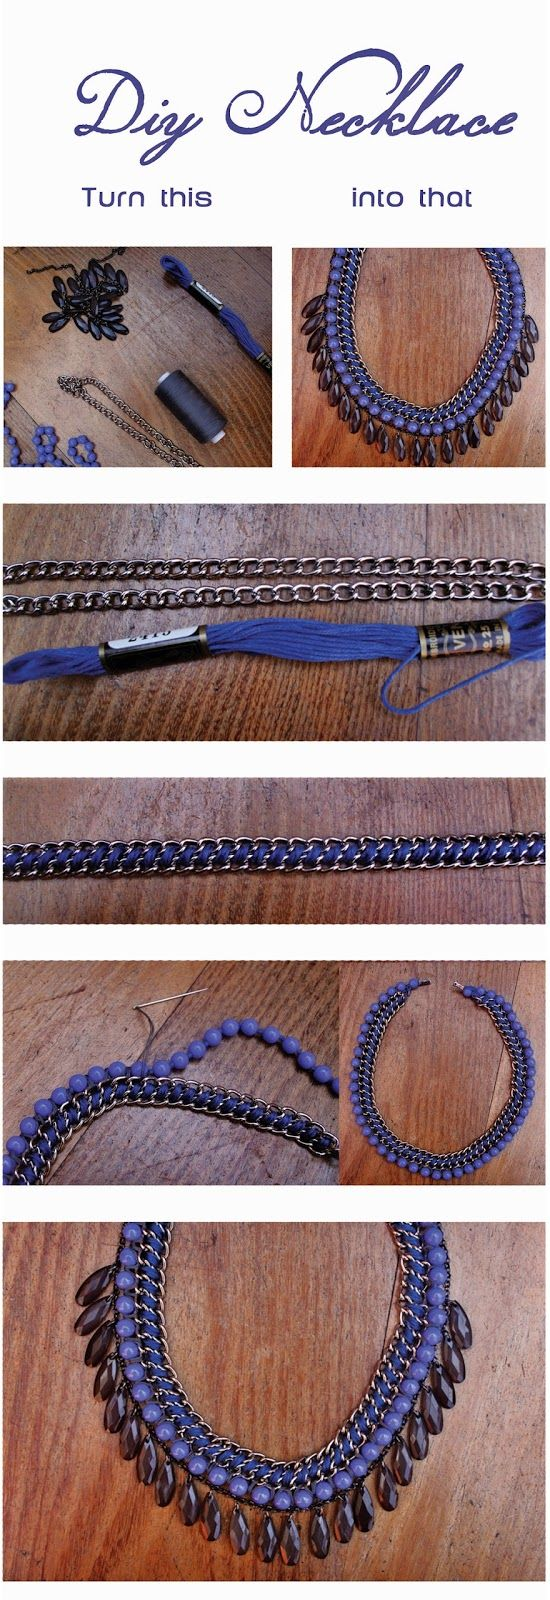 Happy Home Made Stuff: DIY necklace with beads. Easy tutorial